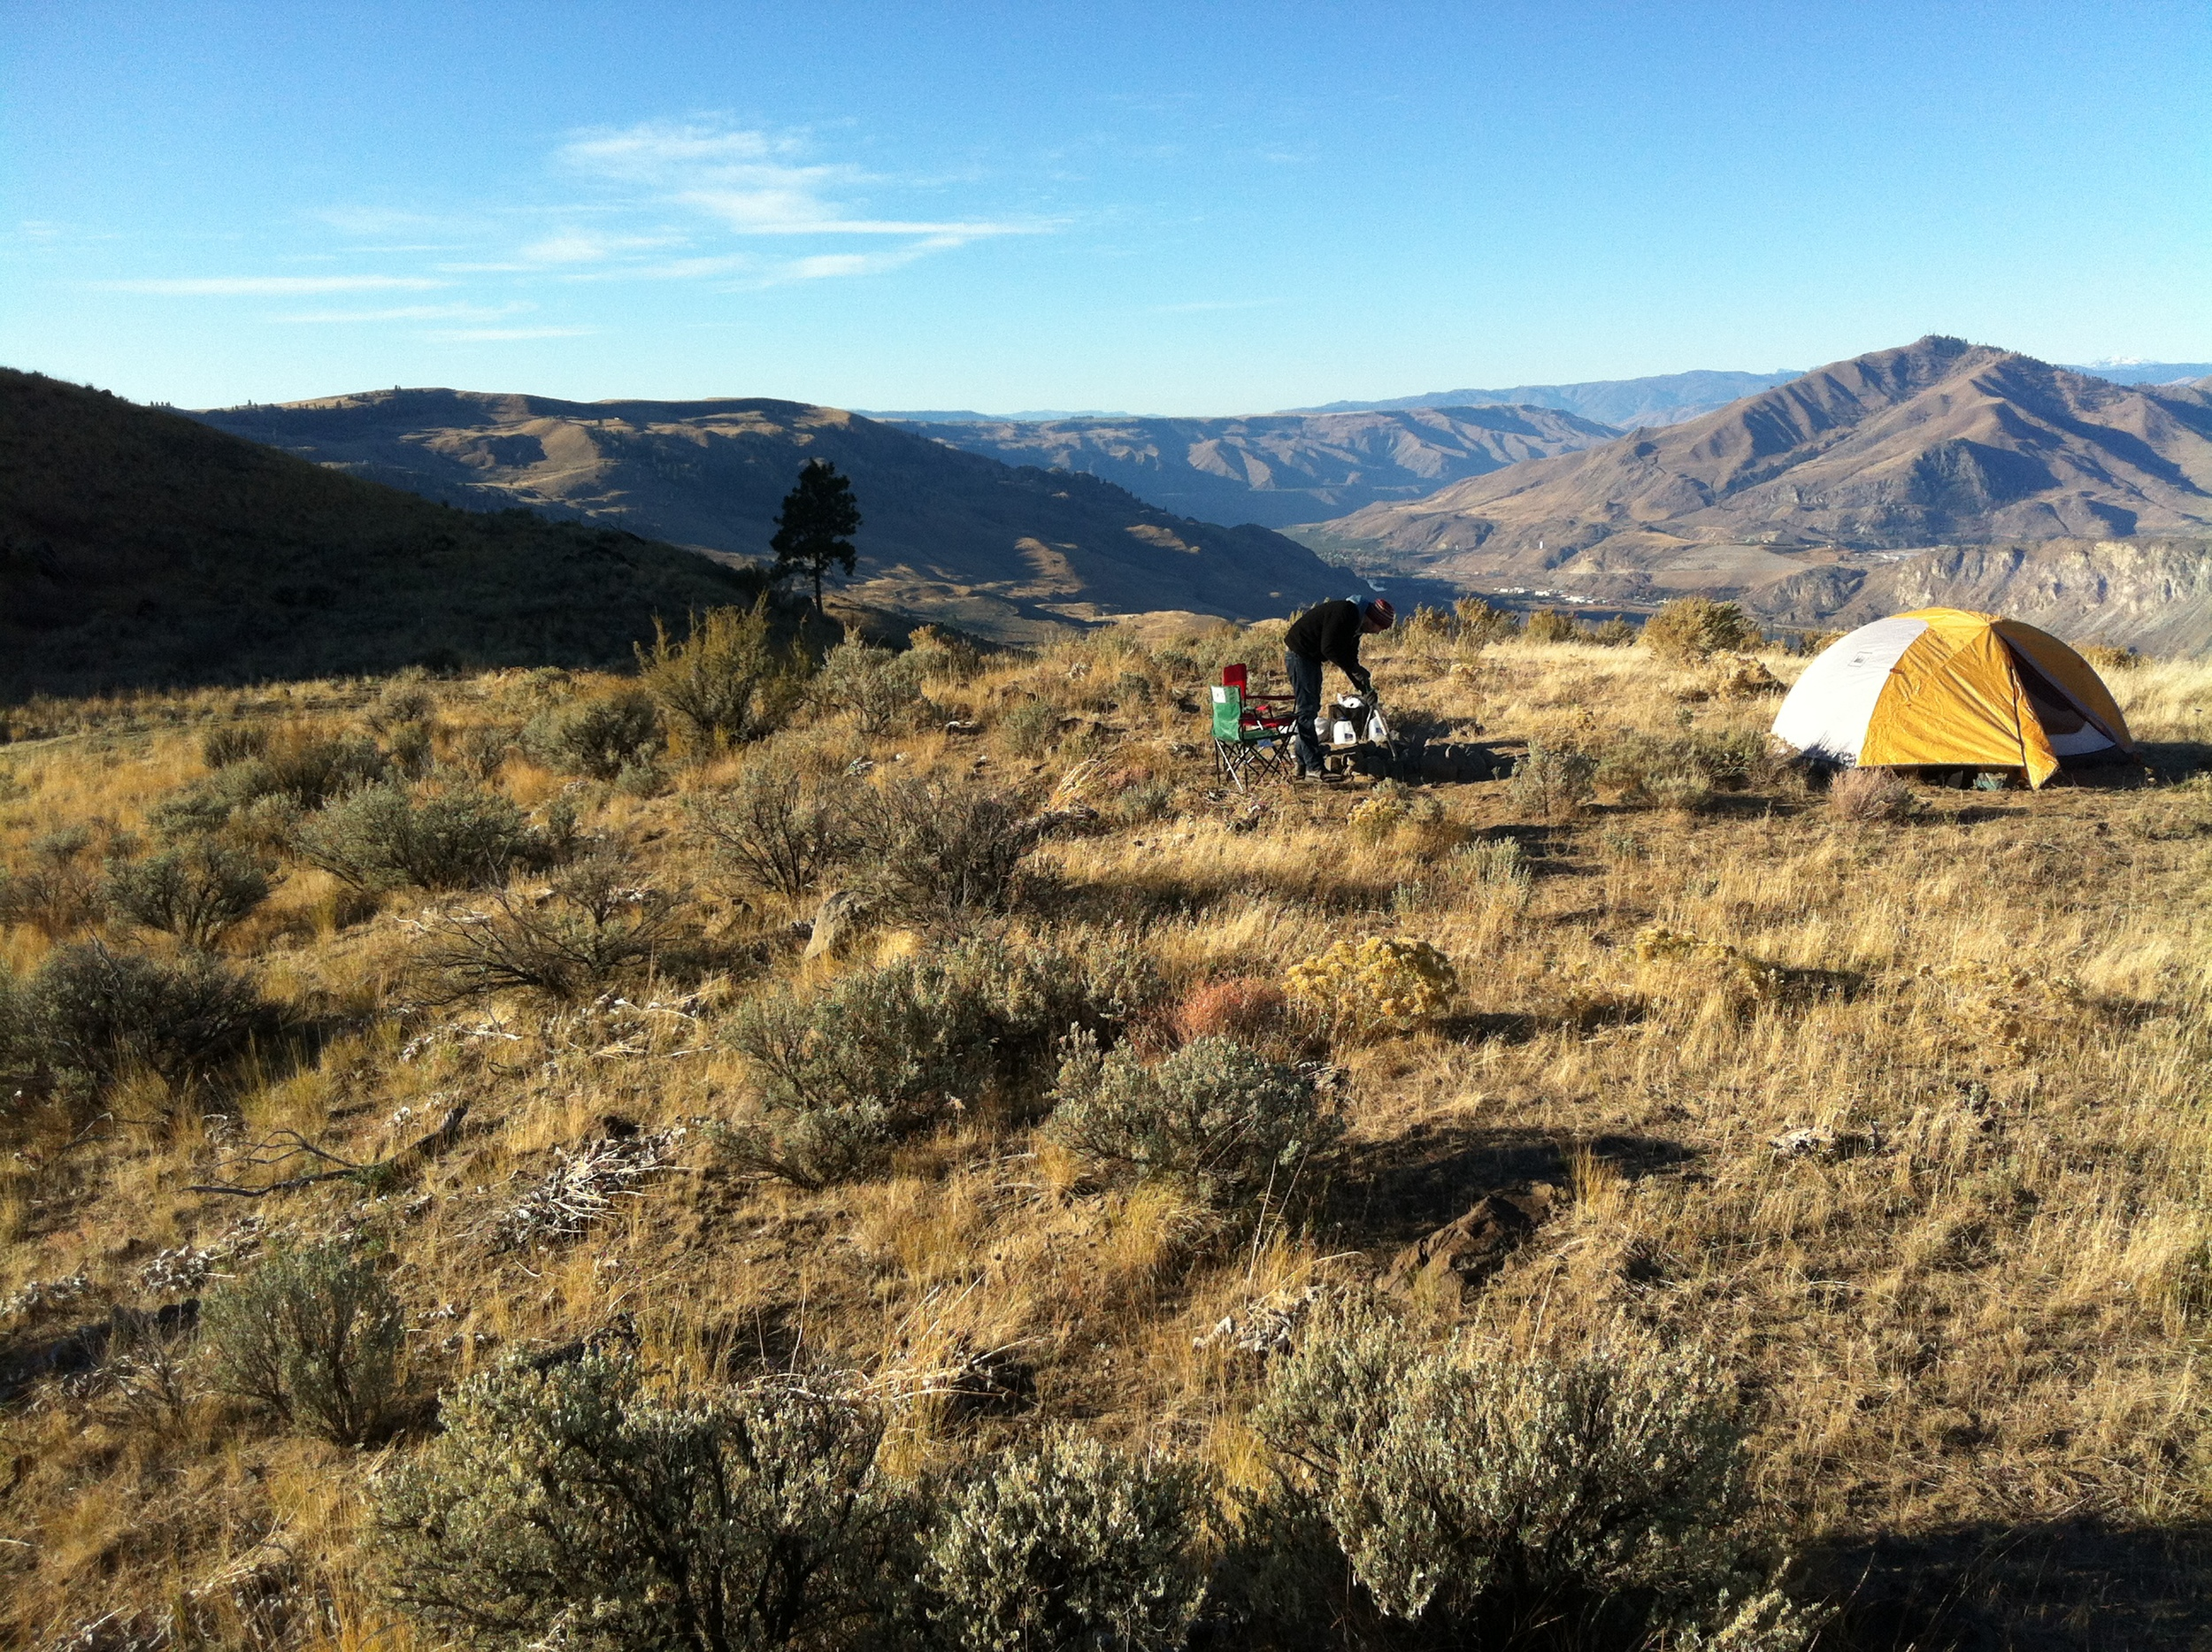 Our first morning after camping on our property in October 2013. Much colder and windier than we anticipated!